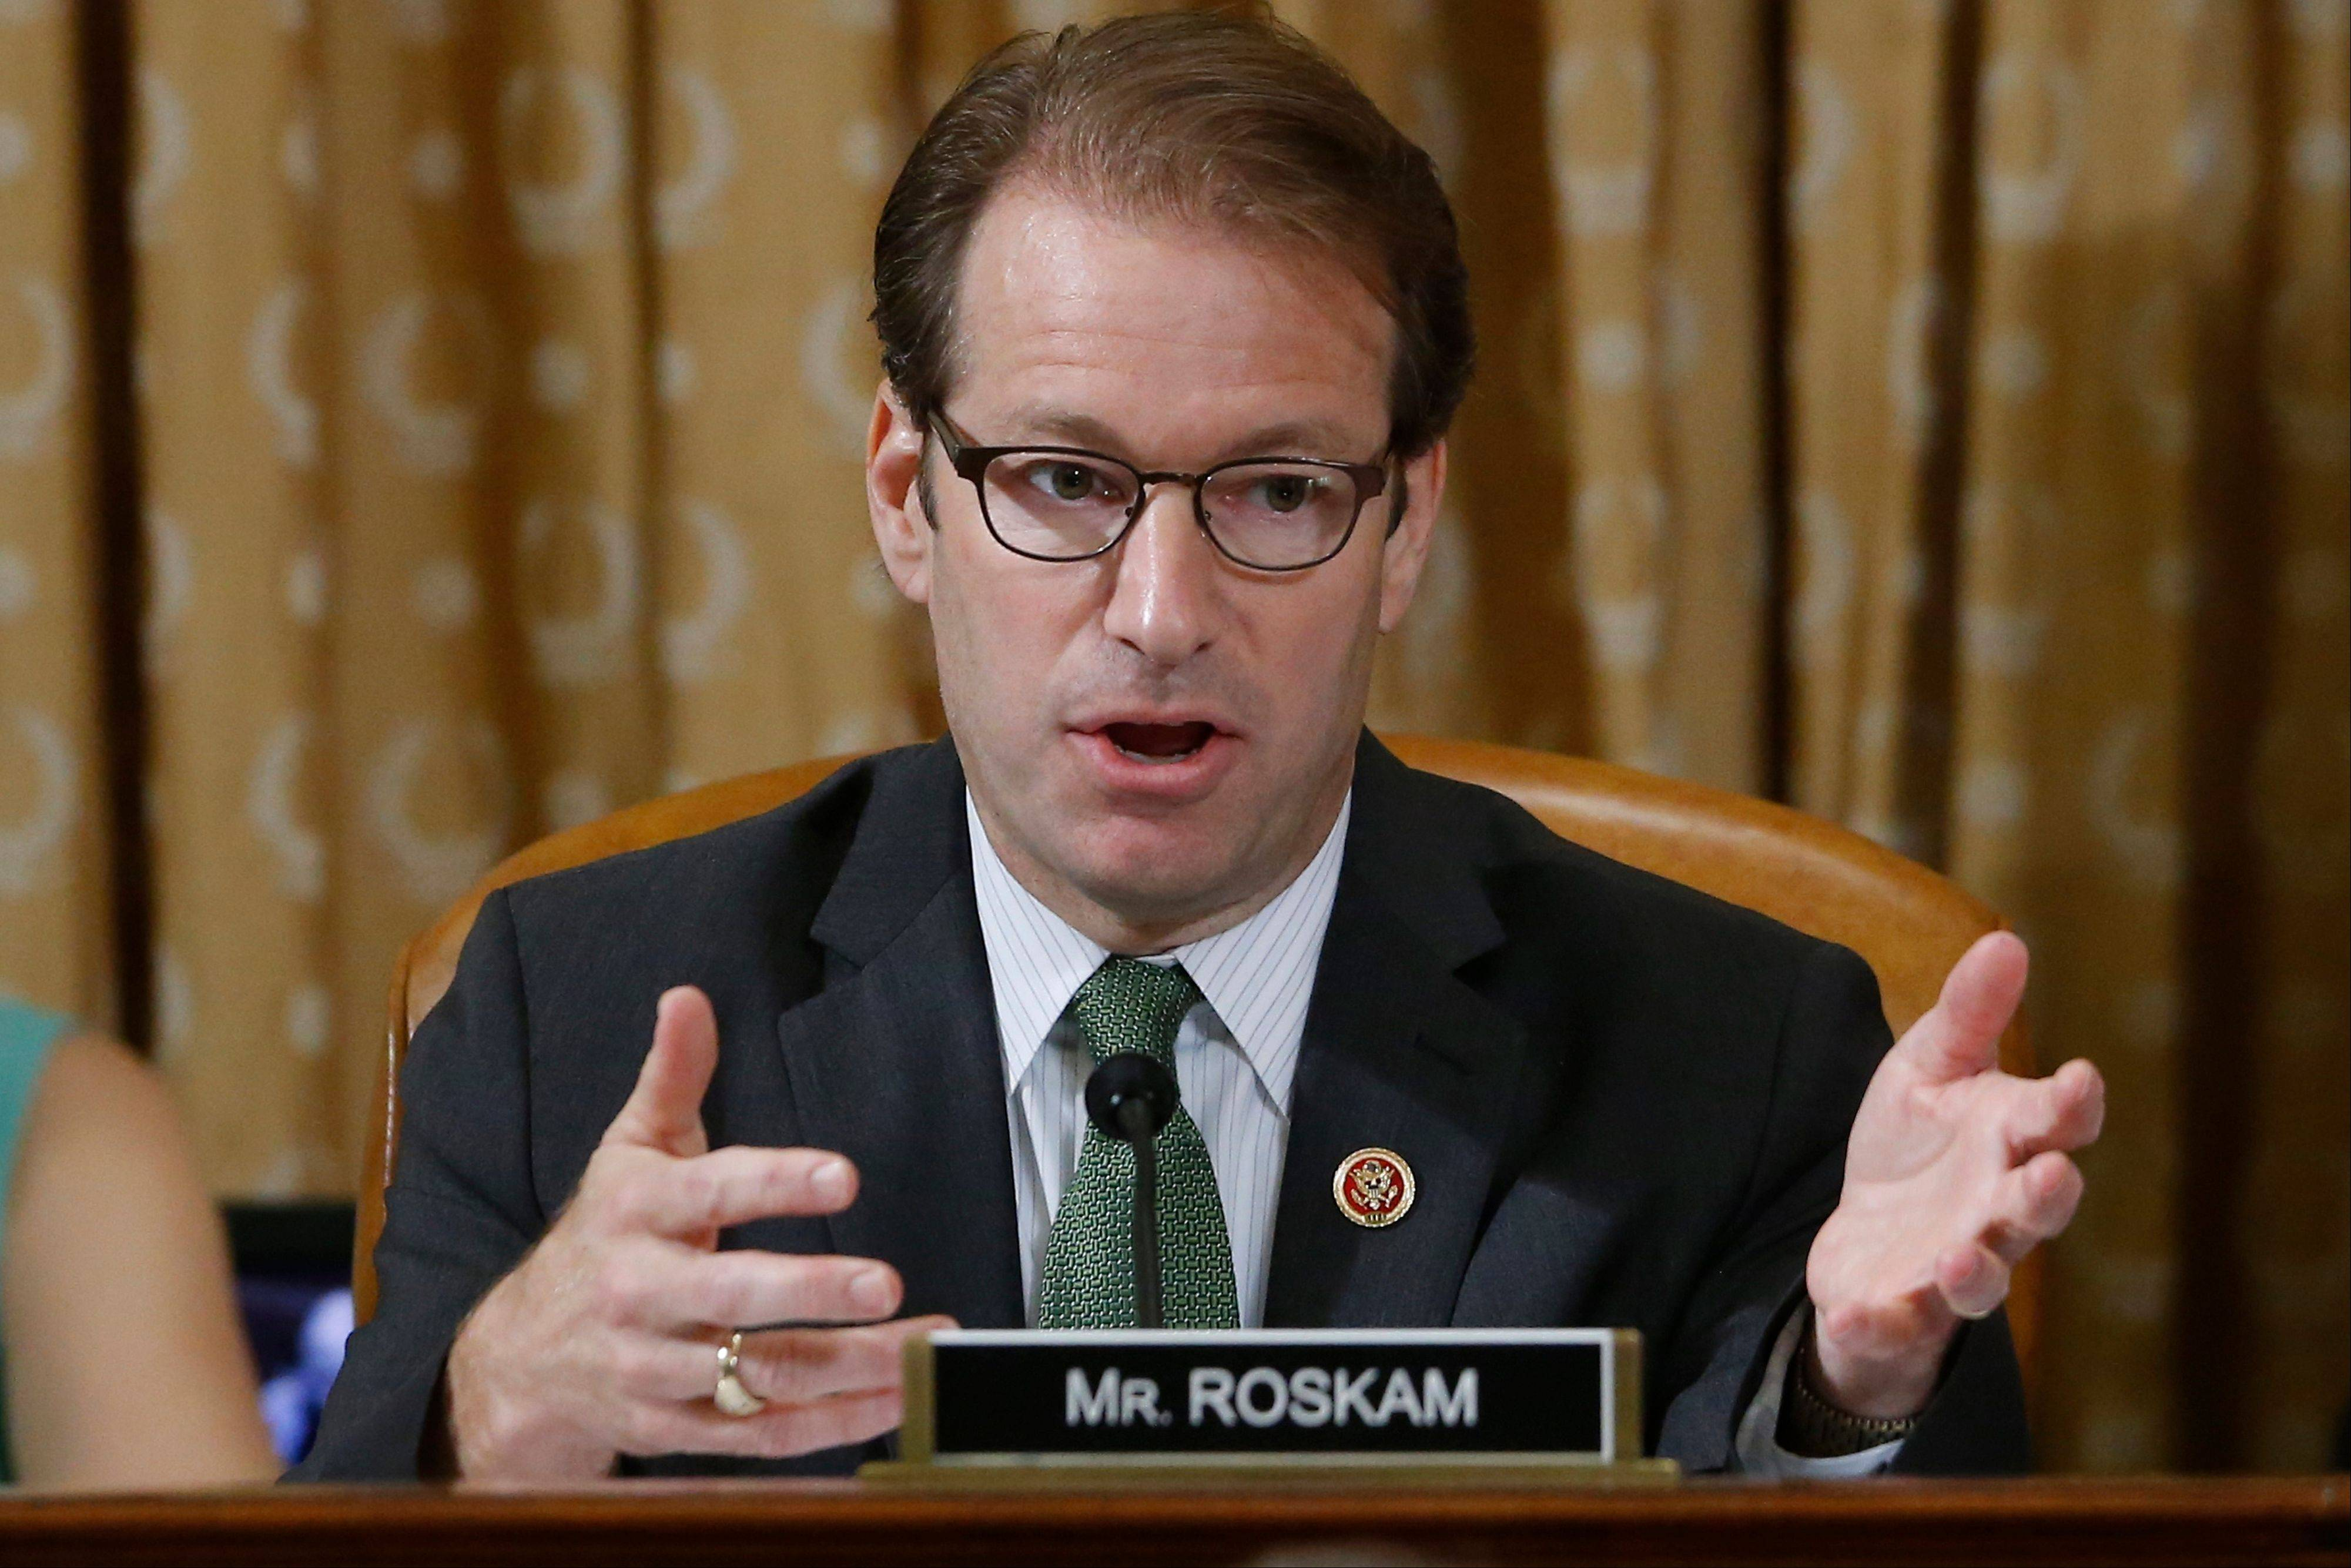 U.S. Rep. Peter Roskam, of Wheaton, speaks on Capitol Hill in Washington last May.